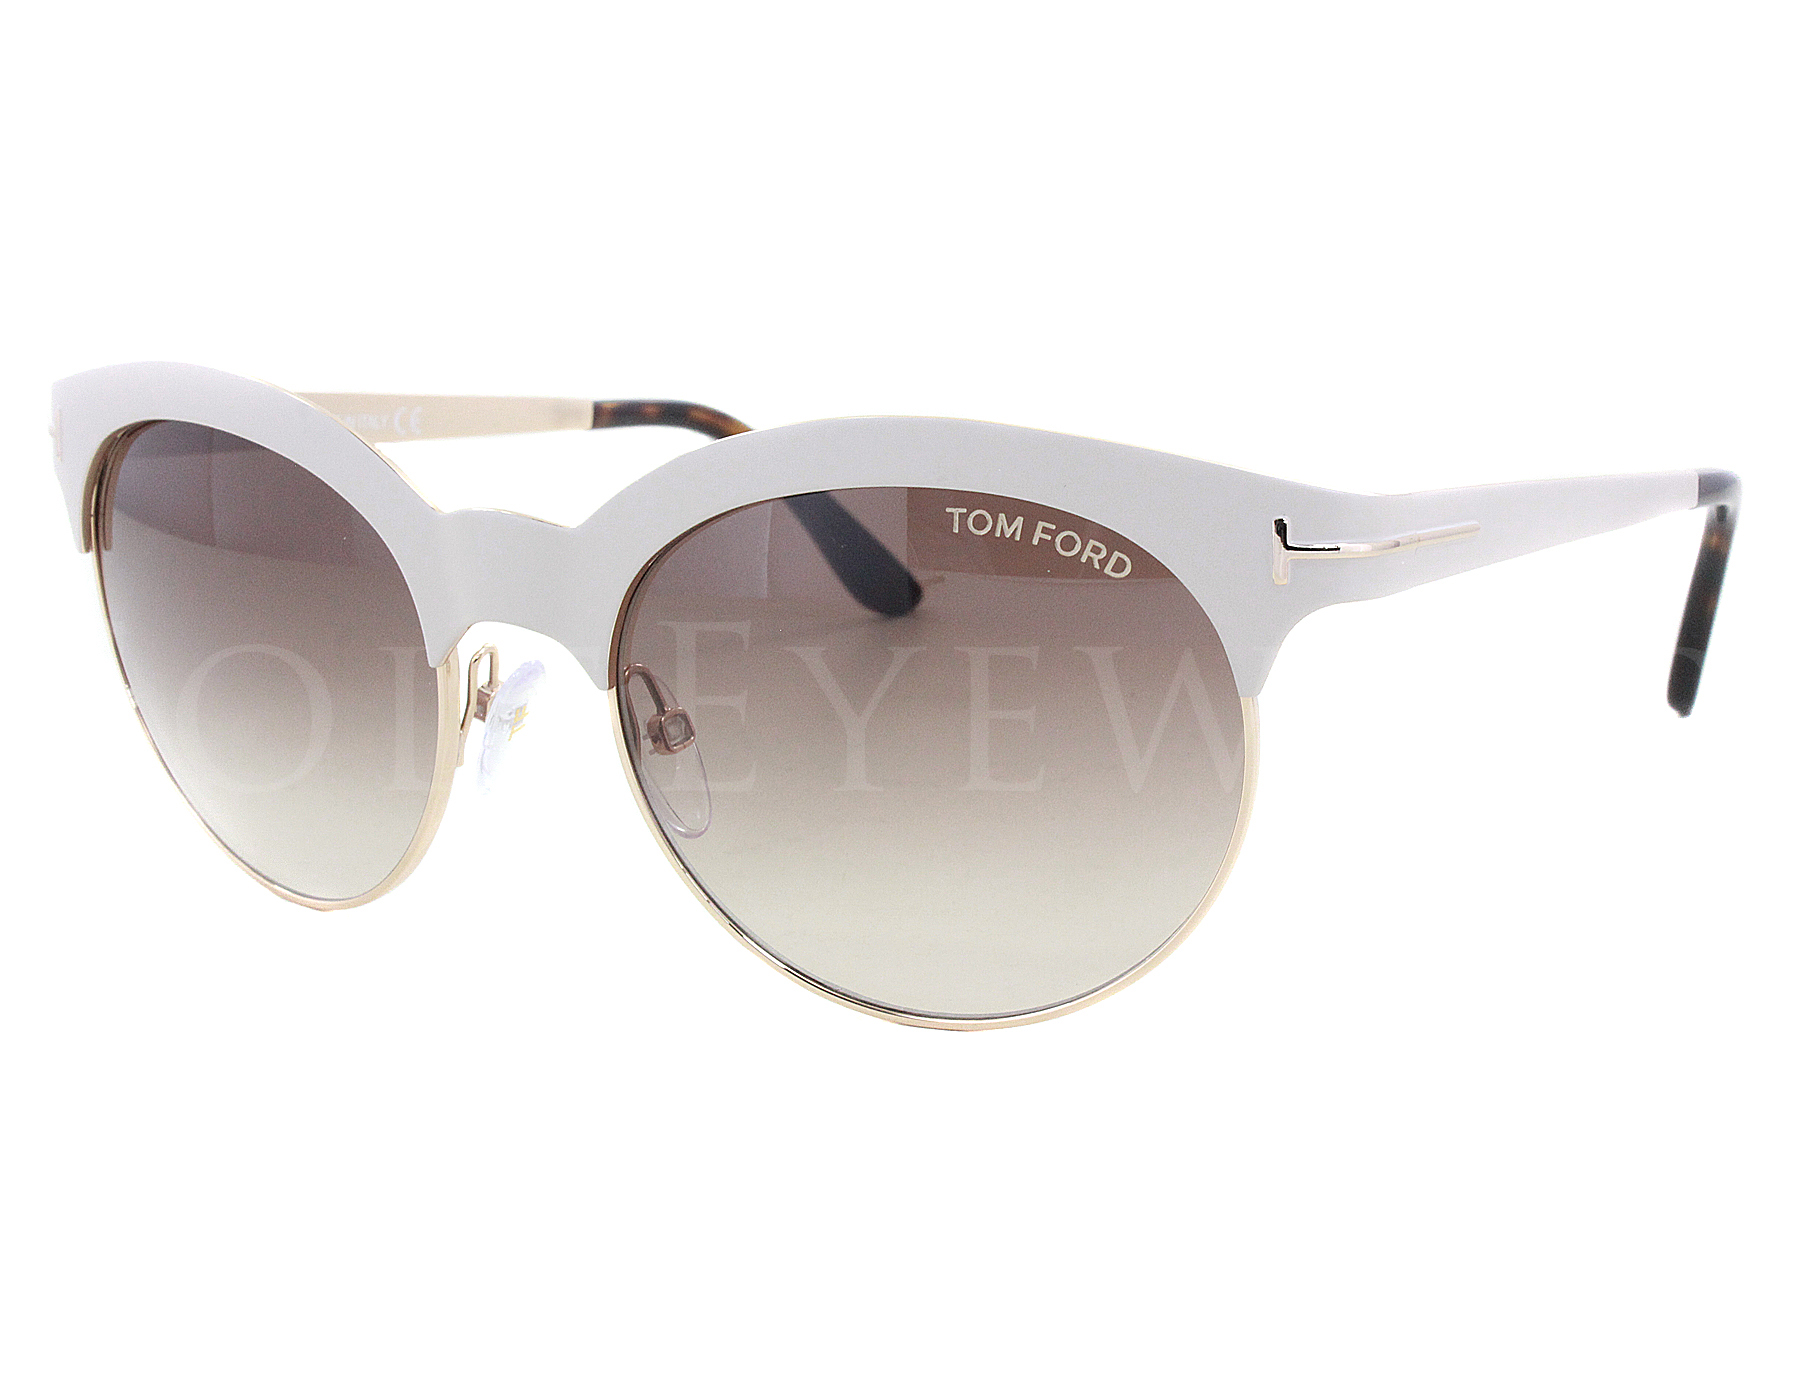 d96c1147fd4 Details about NEW Tom Ford FT 0438 28F Angela Shiny Rose Gold   White  Sunglasses (NO CASE)